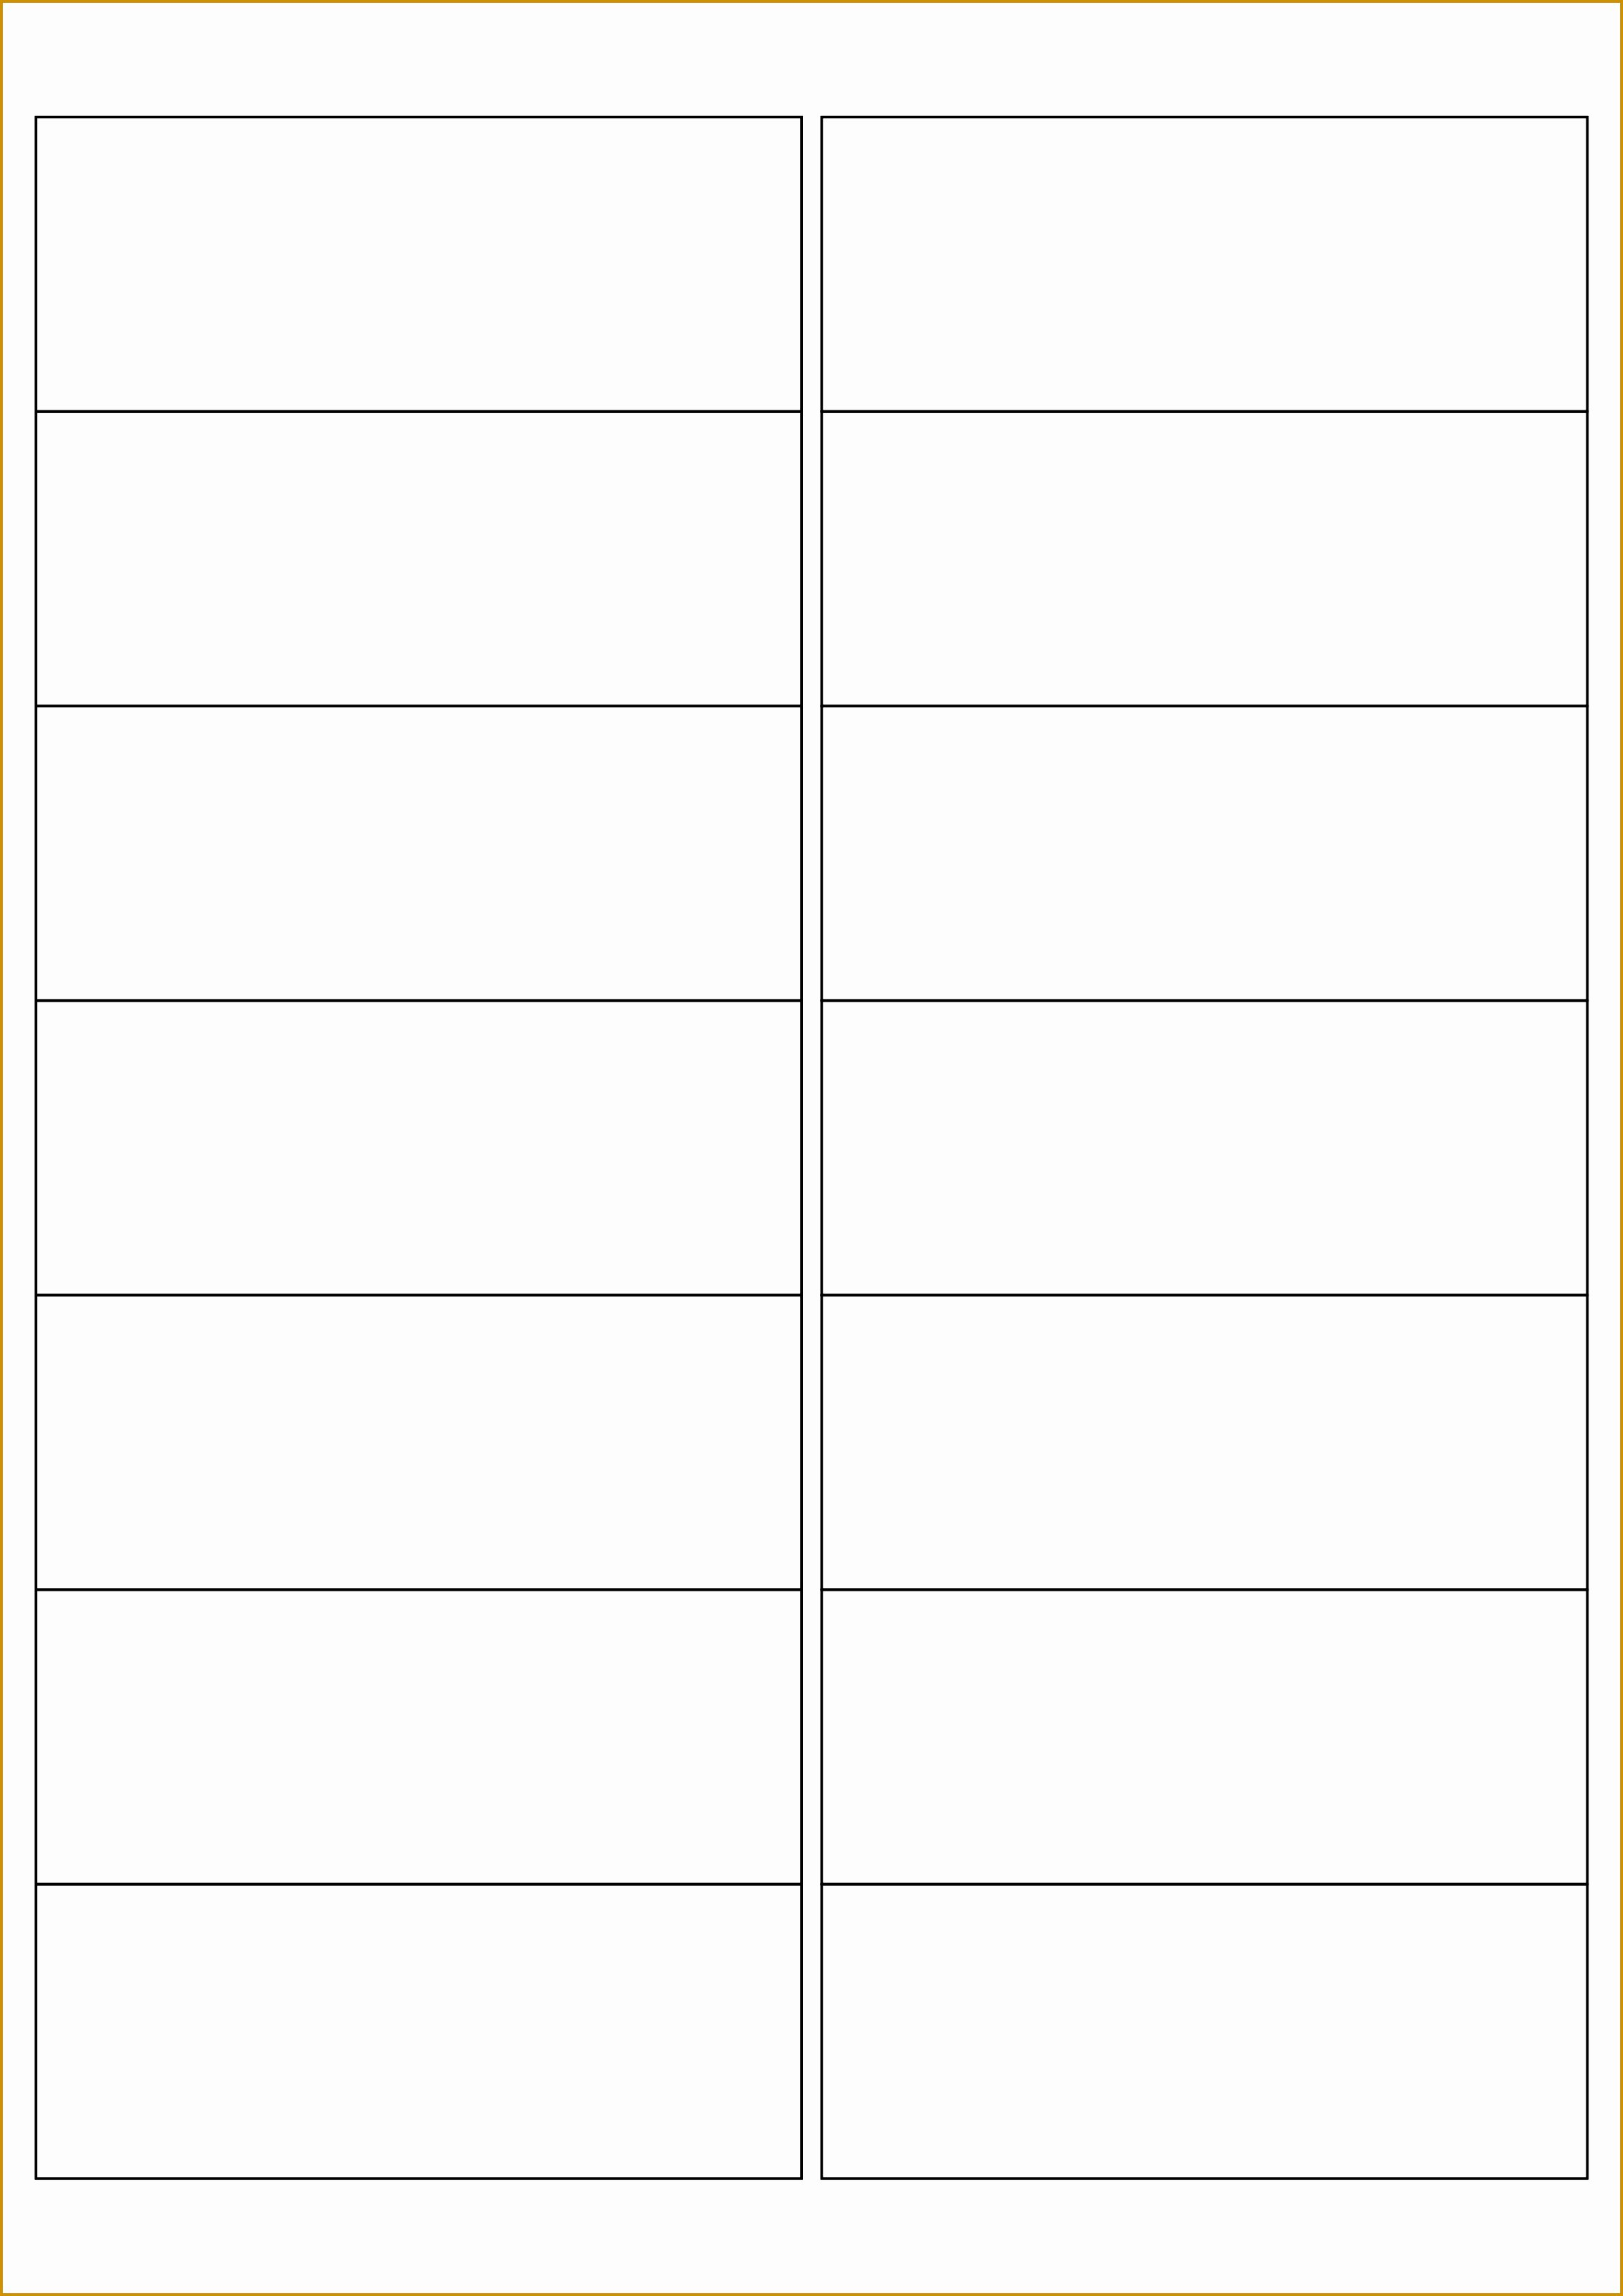 Punch List Template Word Inspirational 4 Punch List form